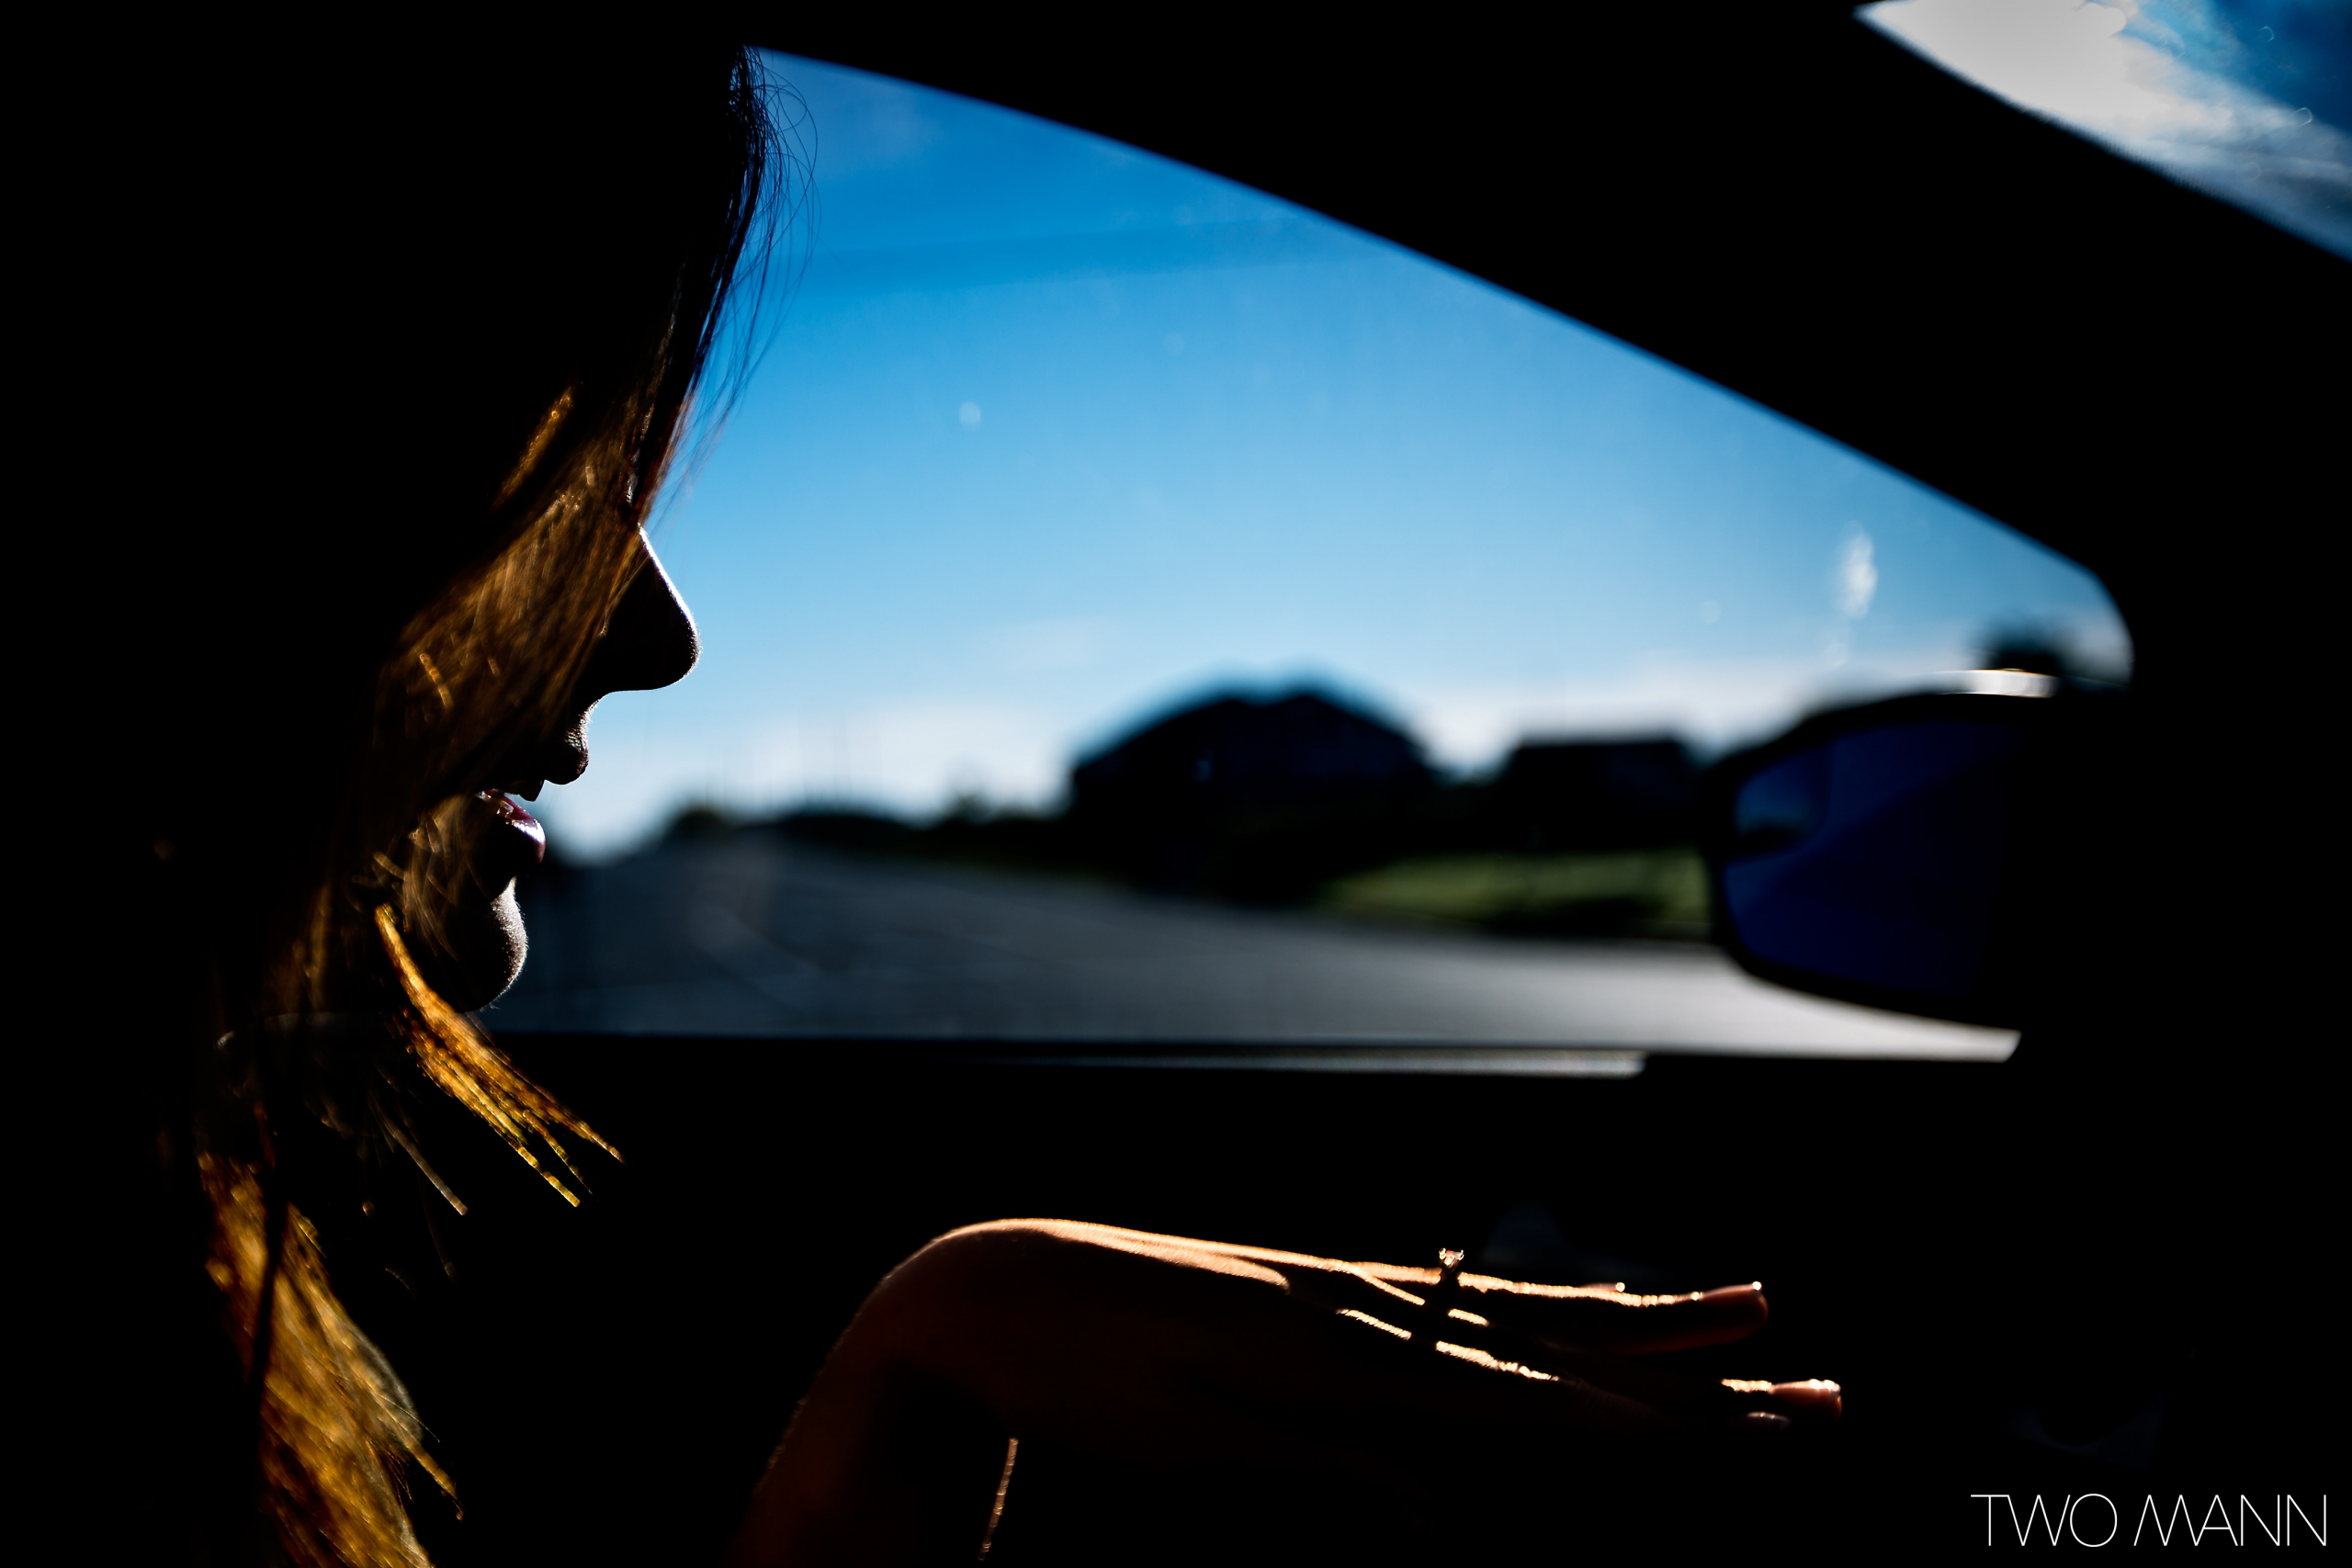 a bride looking at her ring in a car